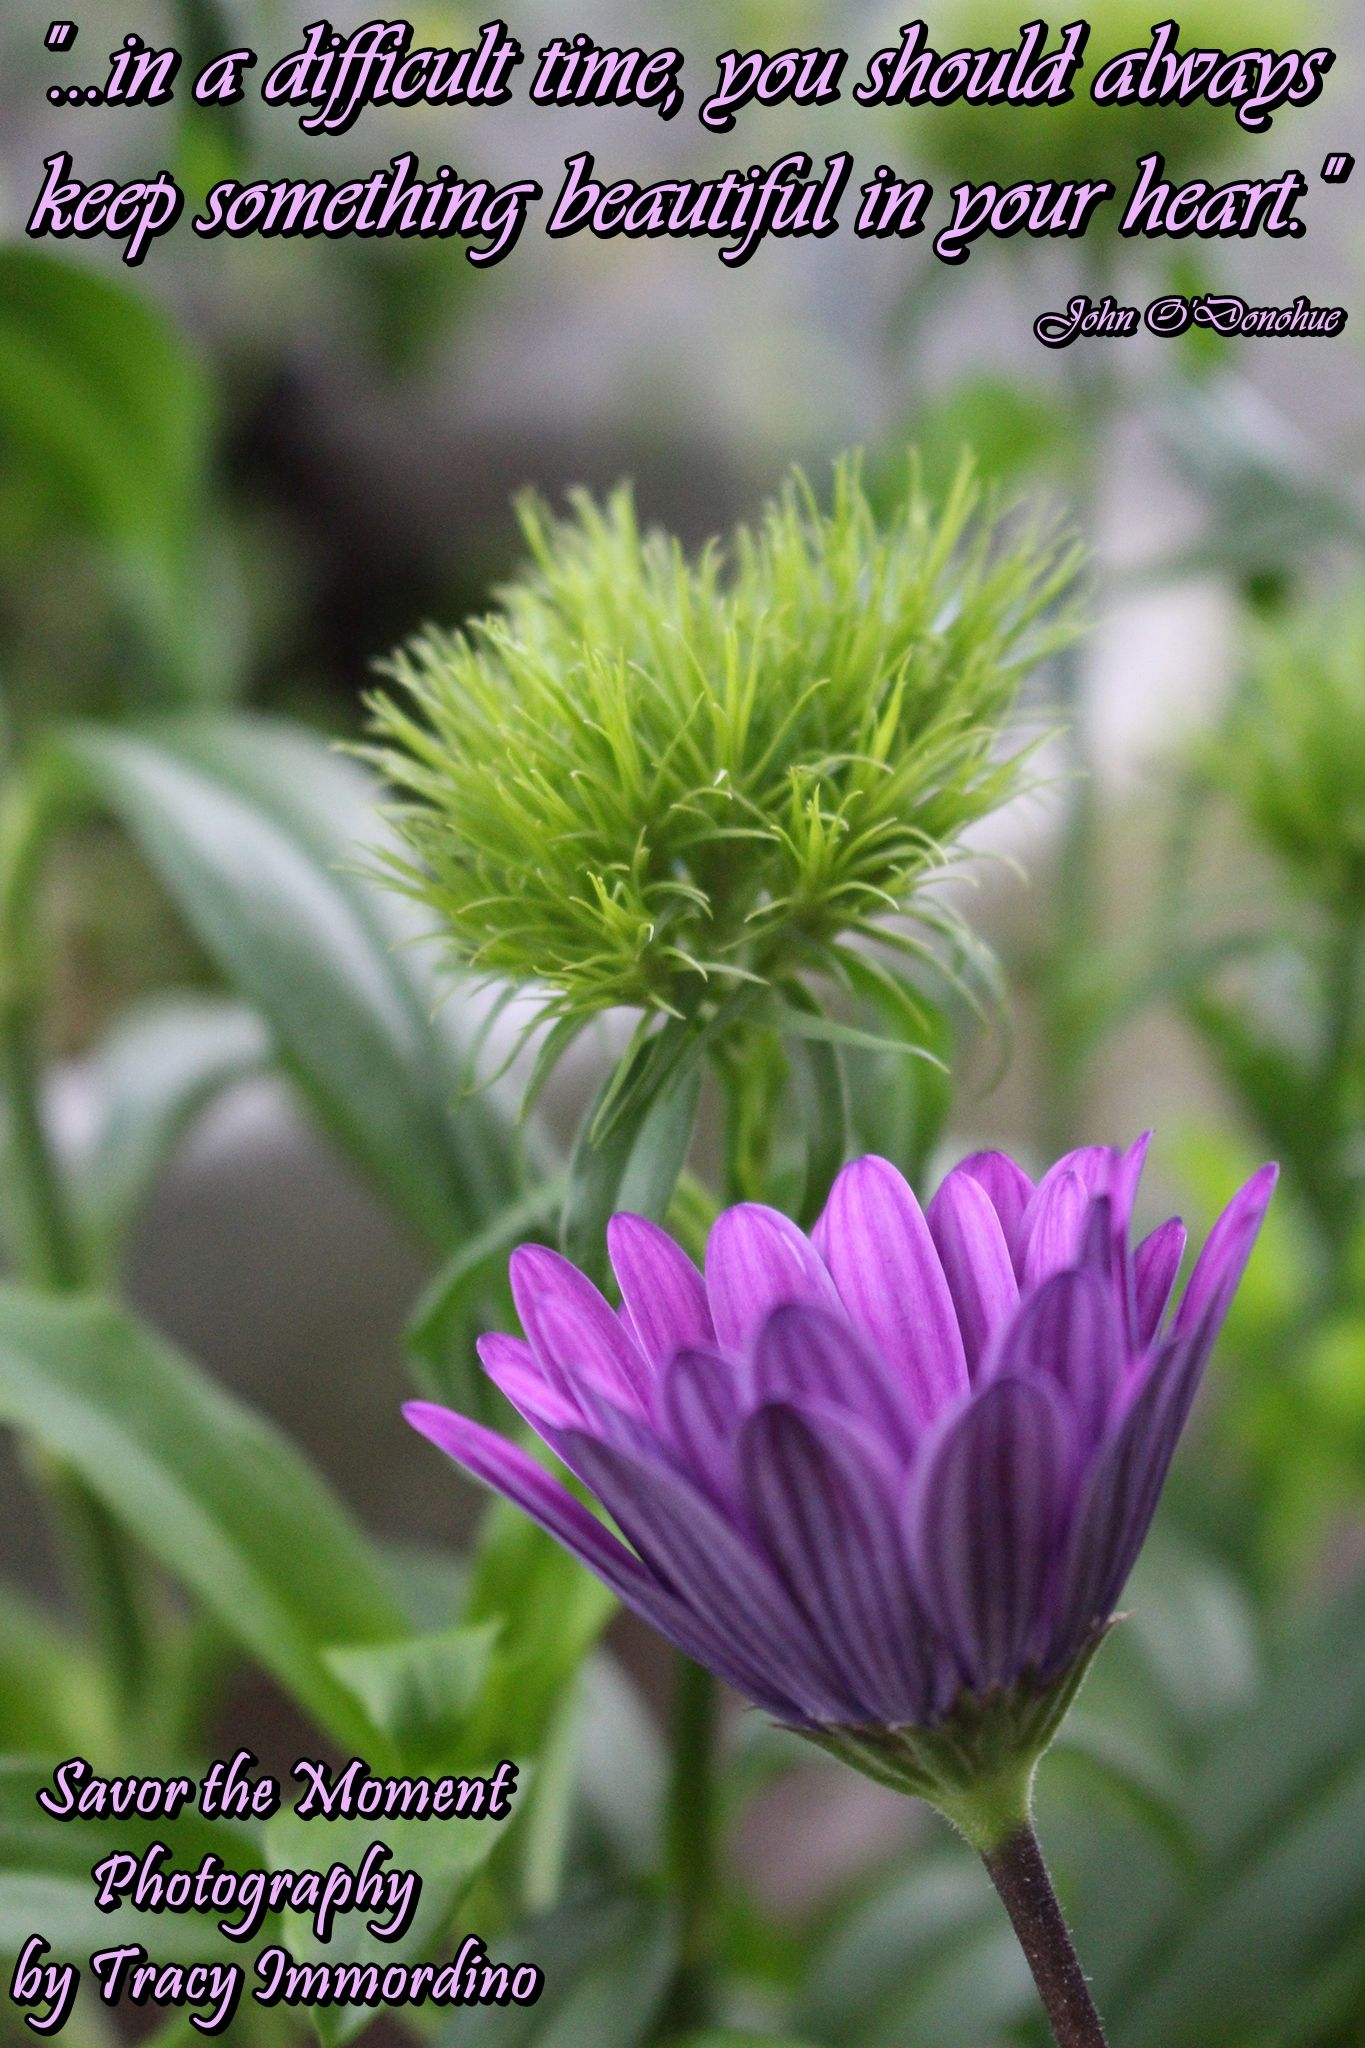 Osteospermum purple daisy and green trick dianthus savor the